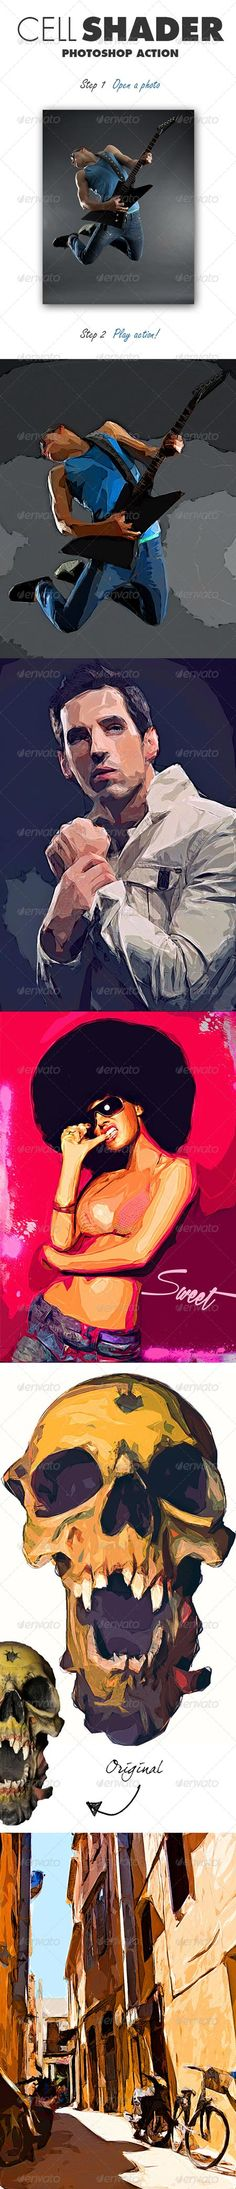 GraphicRiver Cell Shader Photoshop Action 7746847